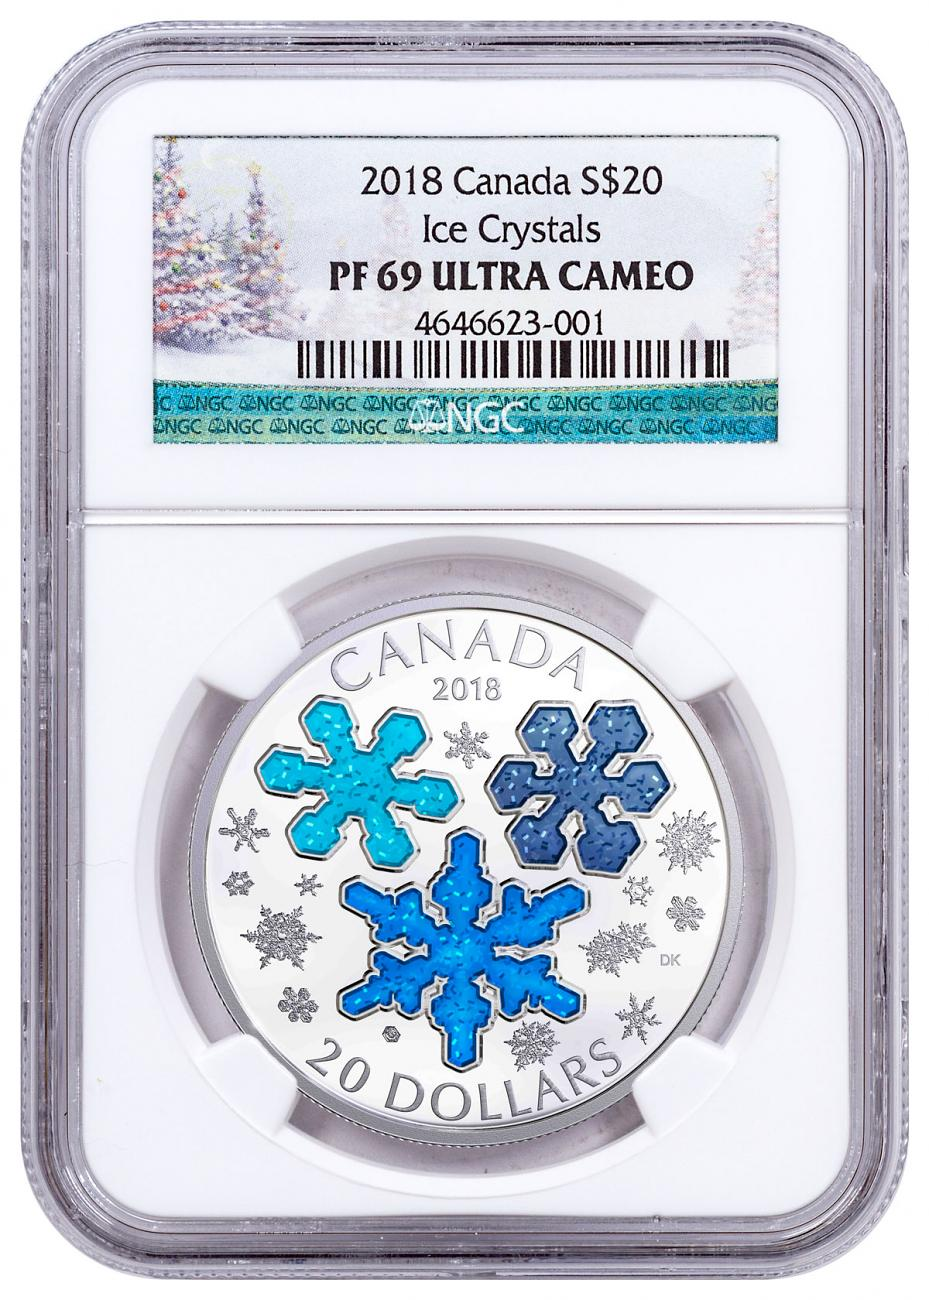 2018 Canada Ice Crystals 1 oz Silver Enameled Proof $20 Coin NGC PF69 Holiday Label